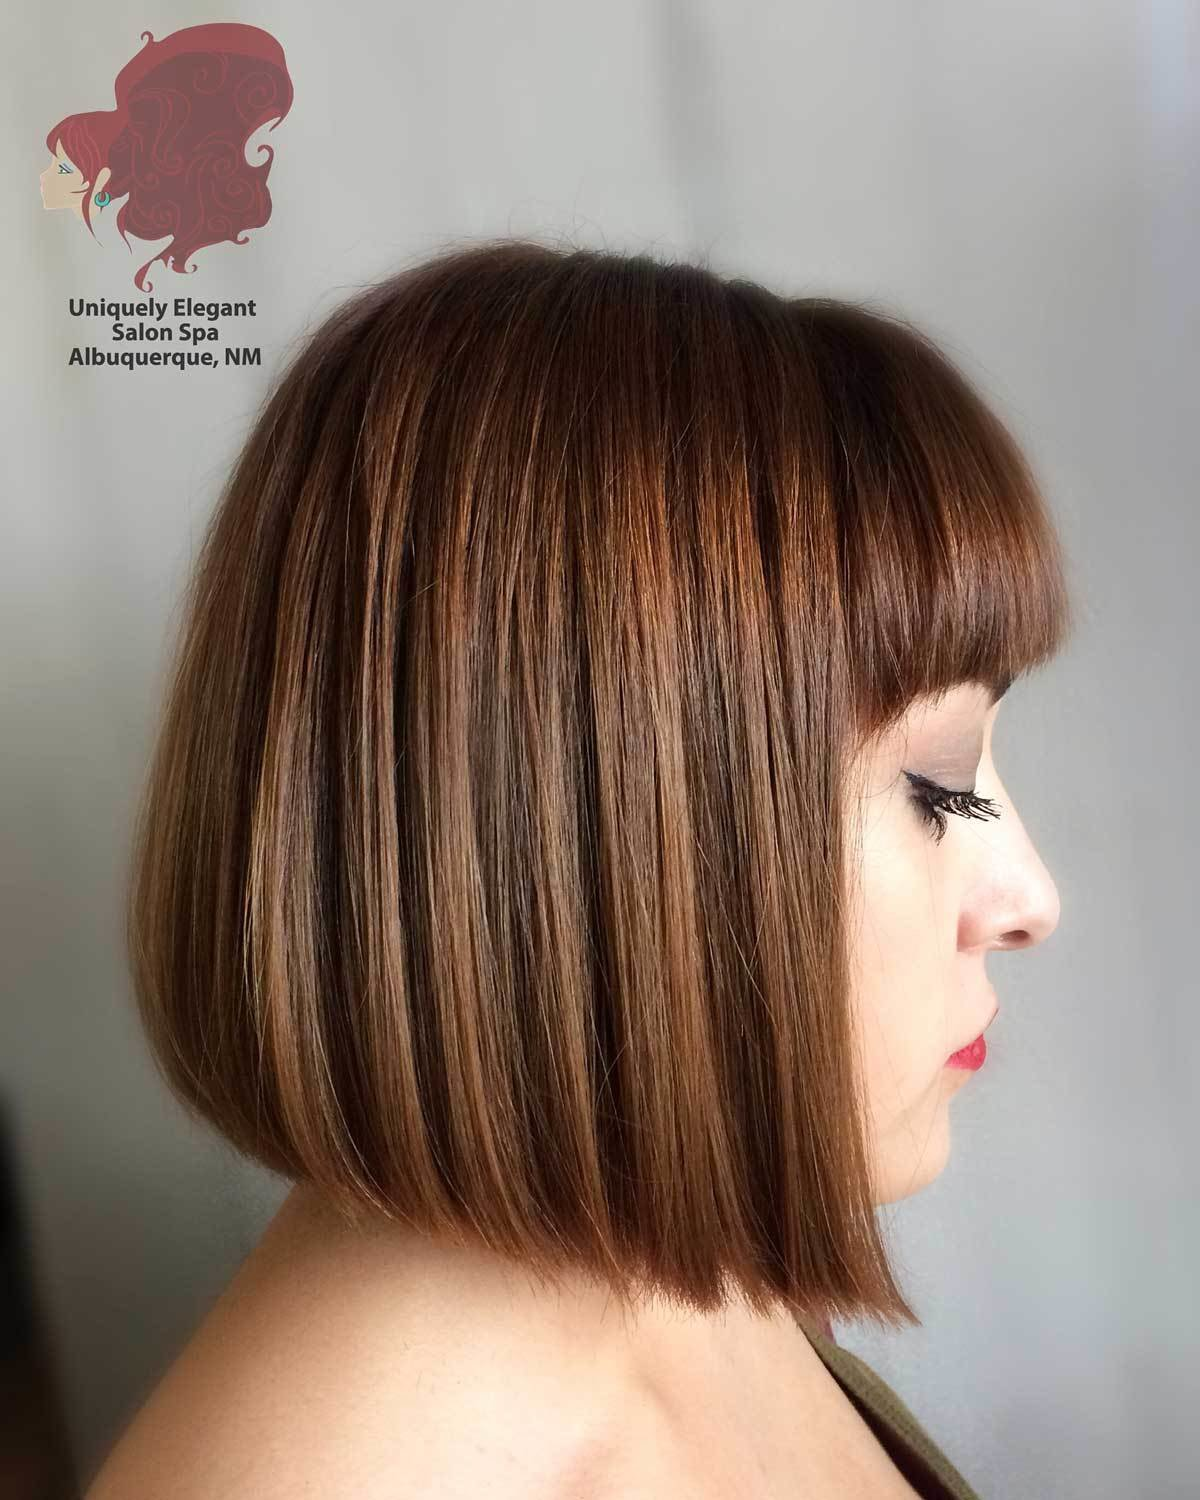 The Best Many Images And Pics Of All Types Of Haircuts And Pictures